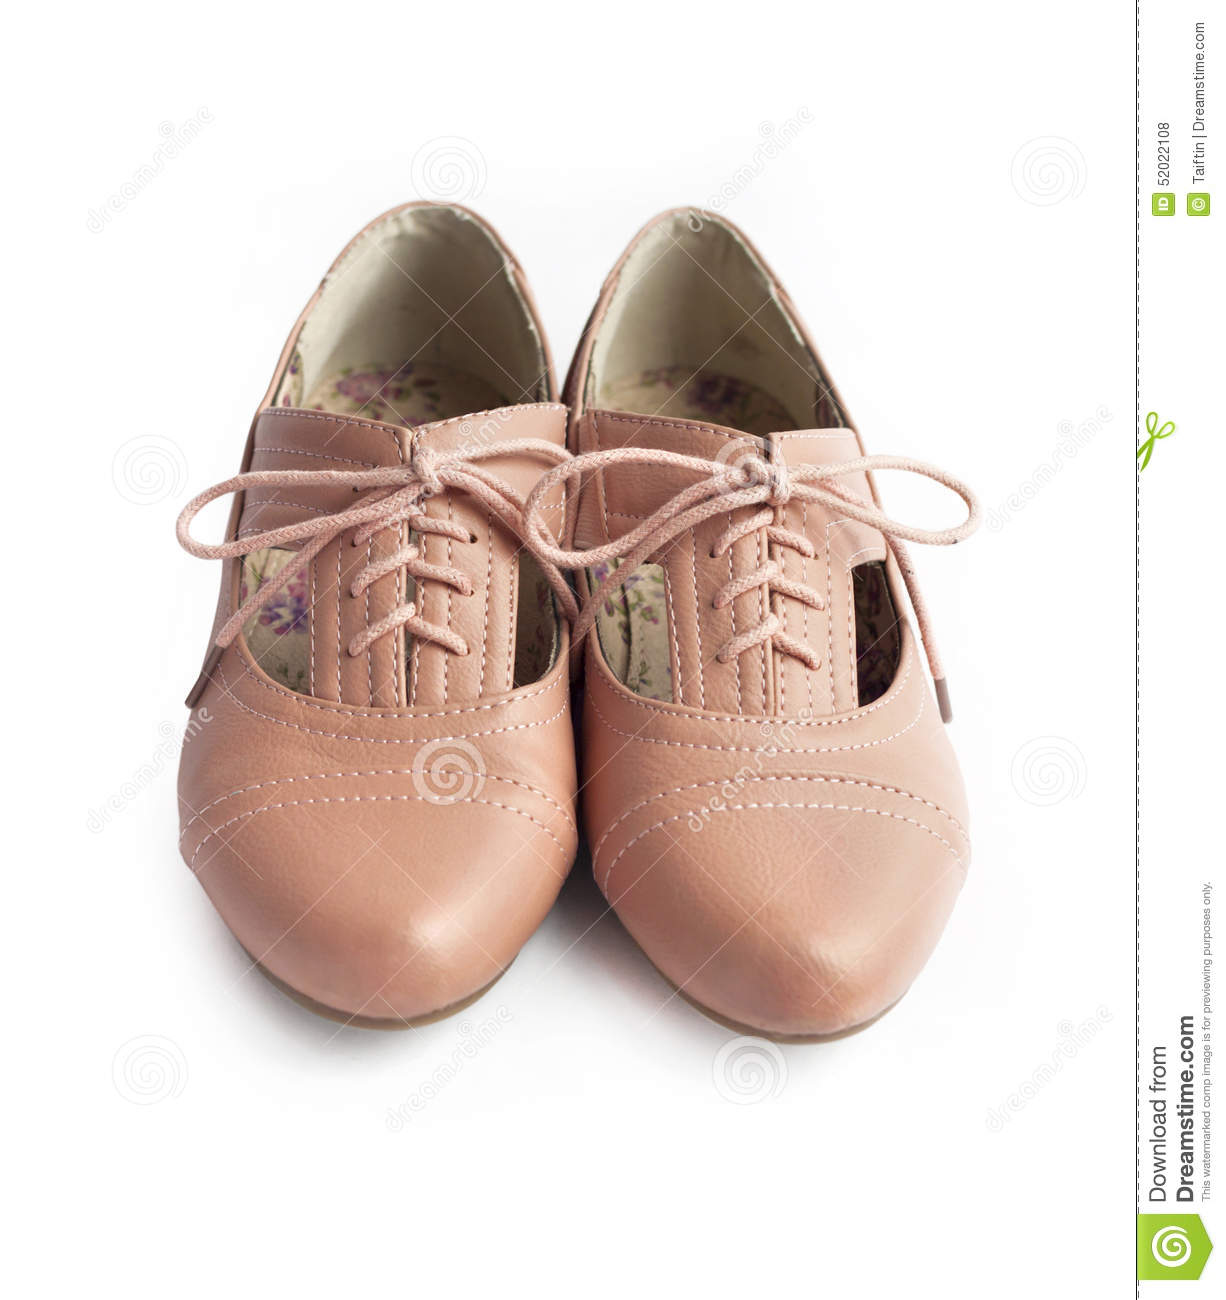 e5ca93a42 Pair Of Female Shoes On White Background Stock Photo - Image of ...